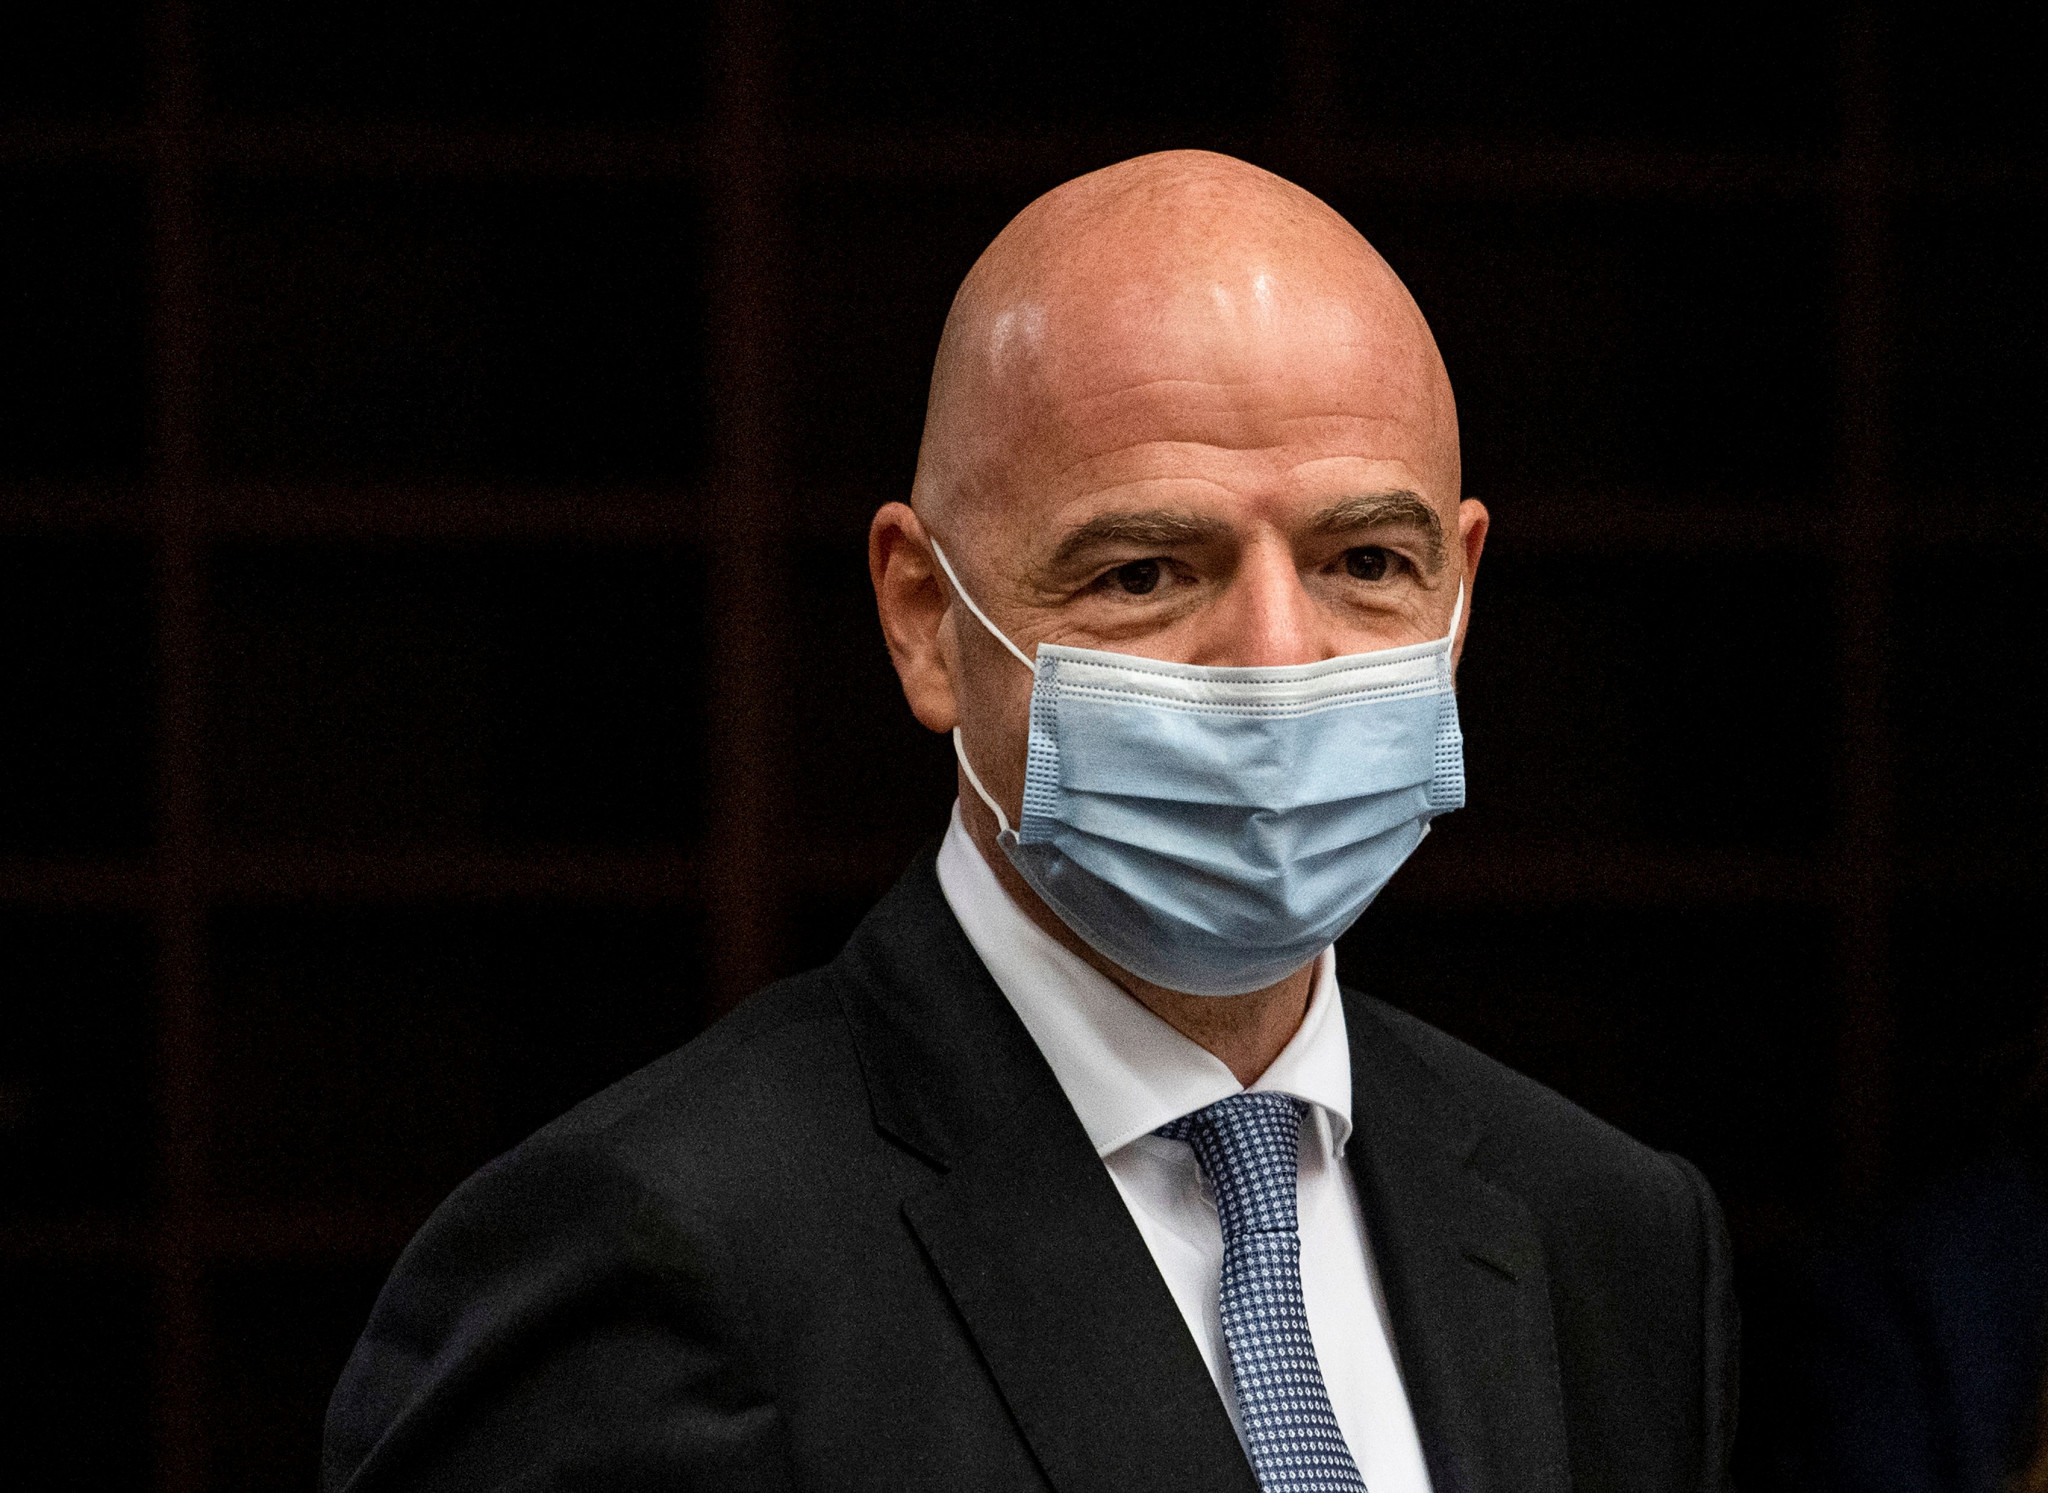 FIFA President Gianni Infantino already faces criminal proceedings over his meetings with former Swiss Attorney General Michael  Lauber ©Getty Images